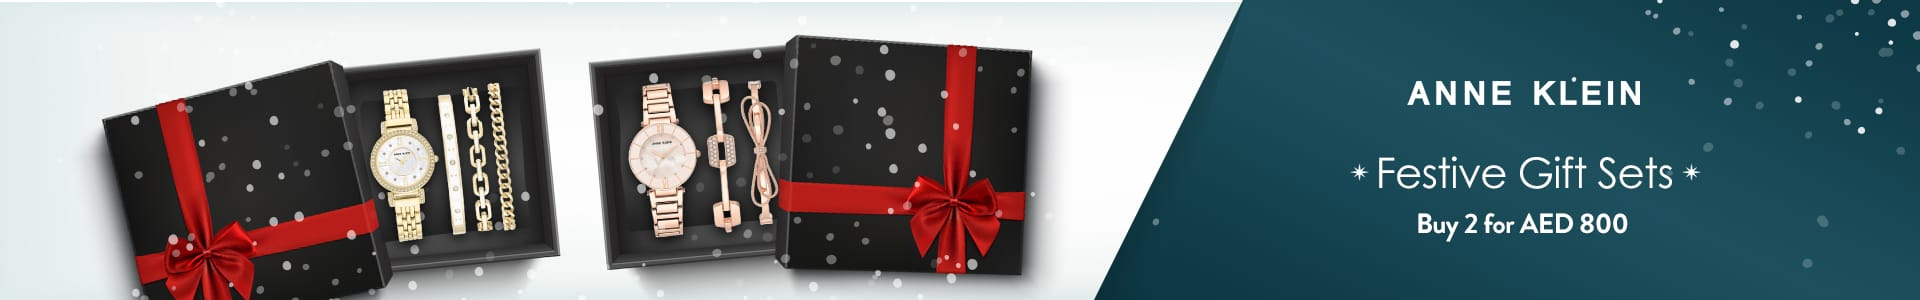 Gift Sets- Buy 2 for AED 800